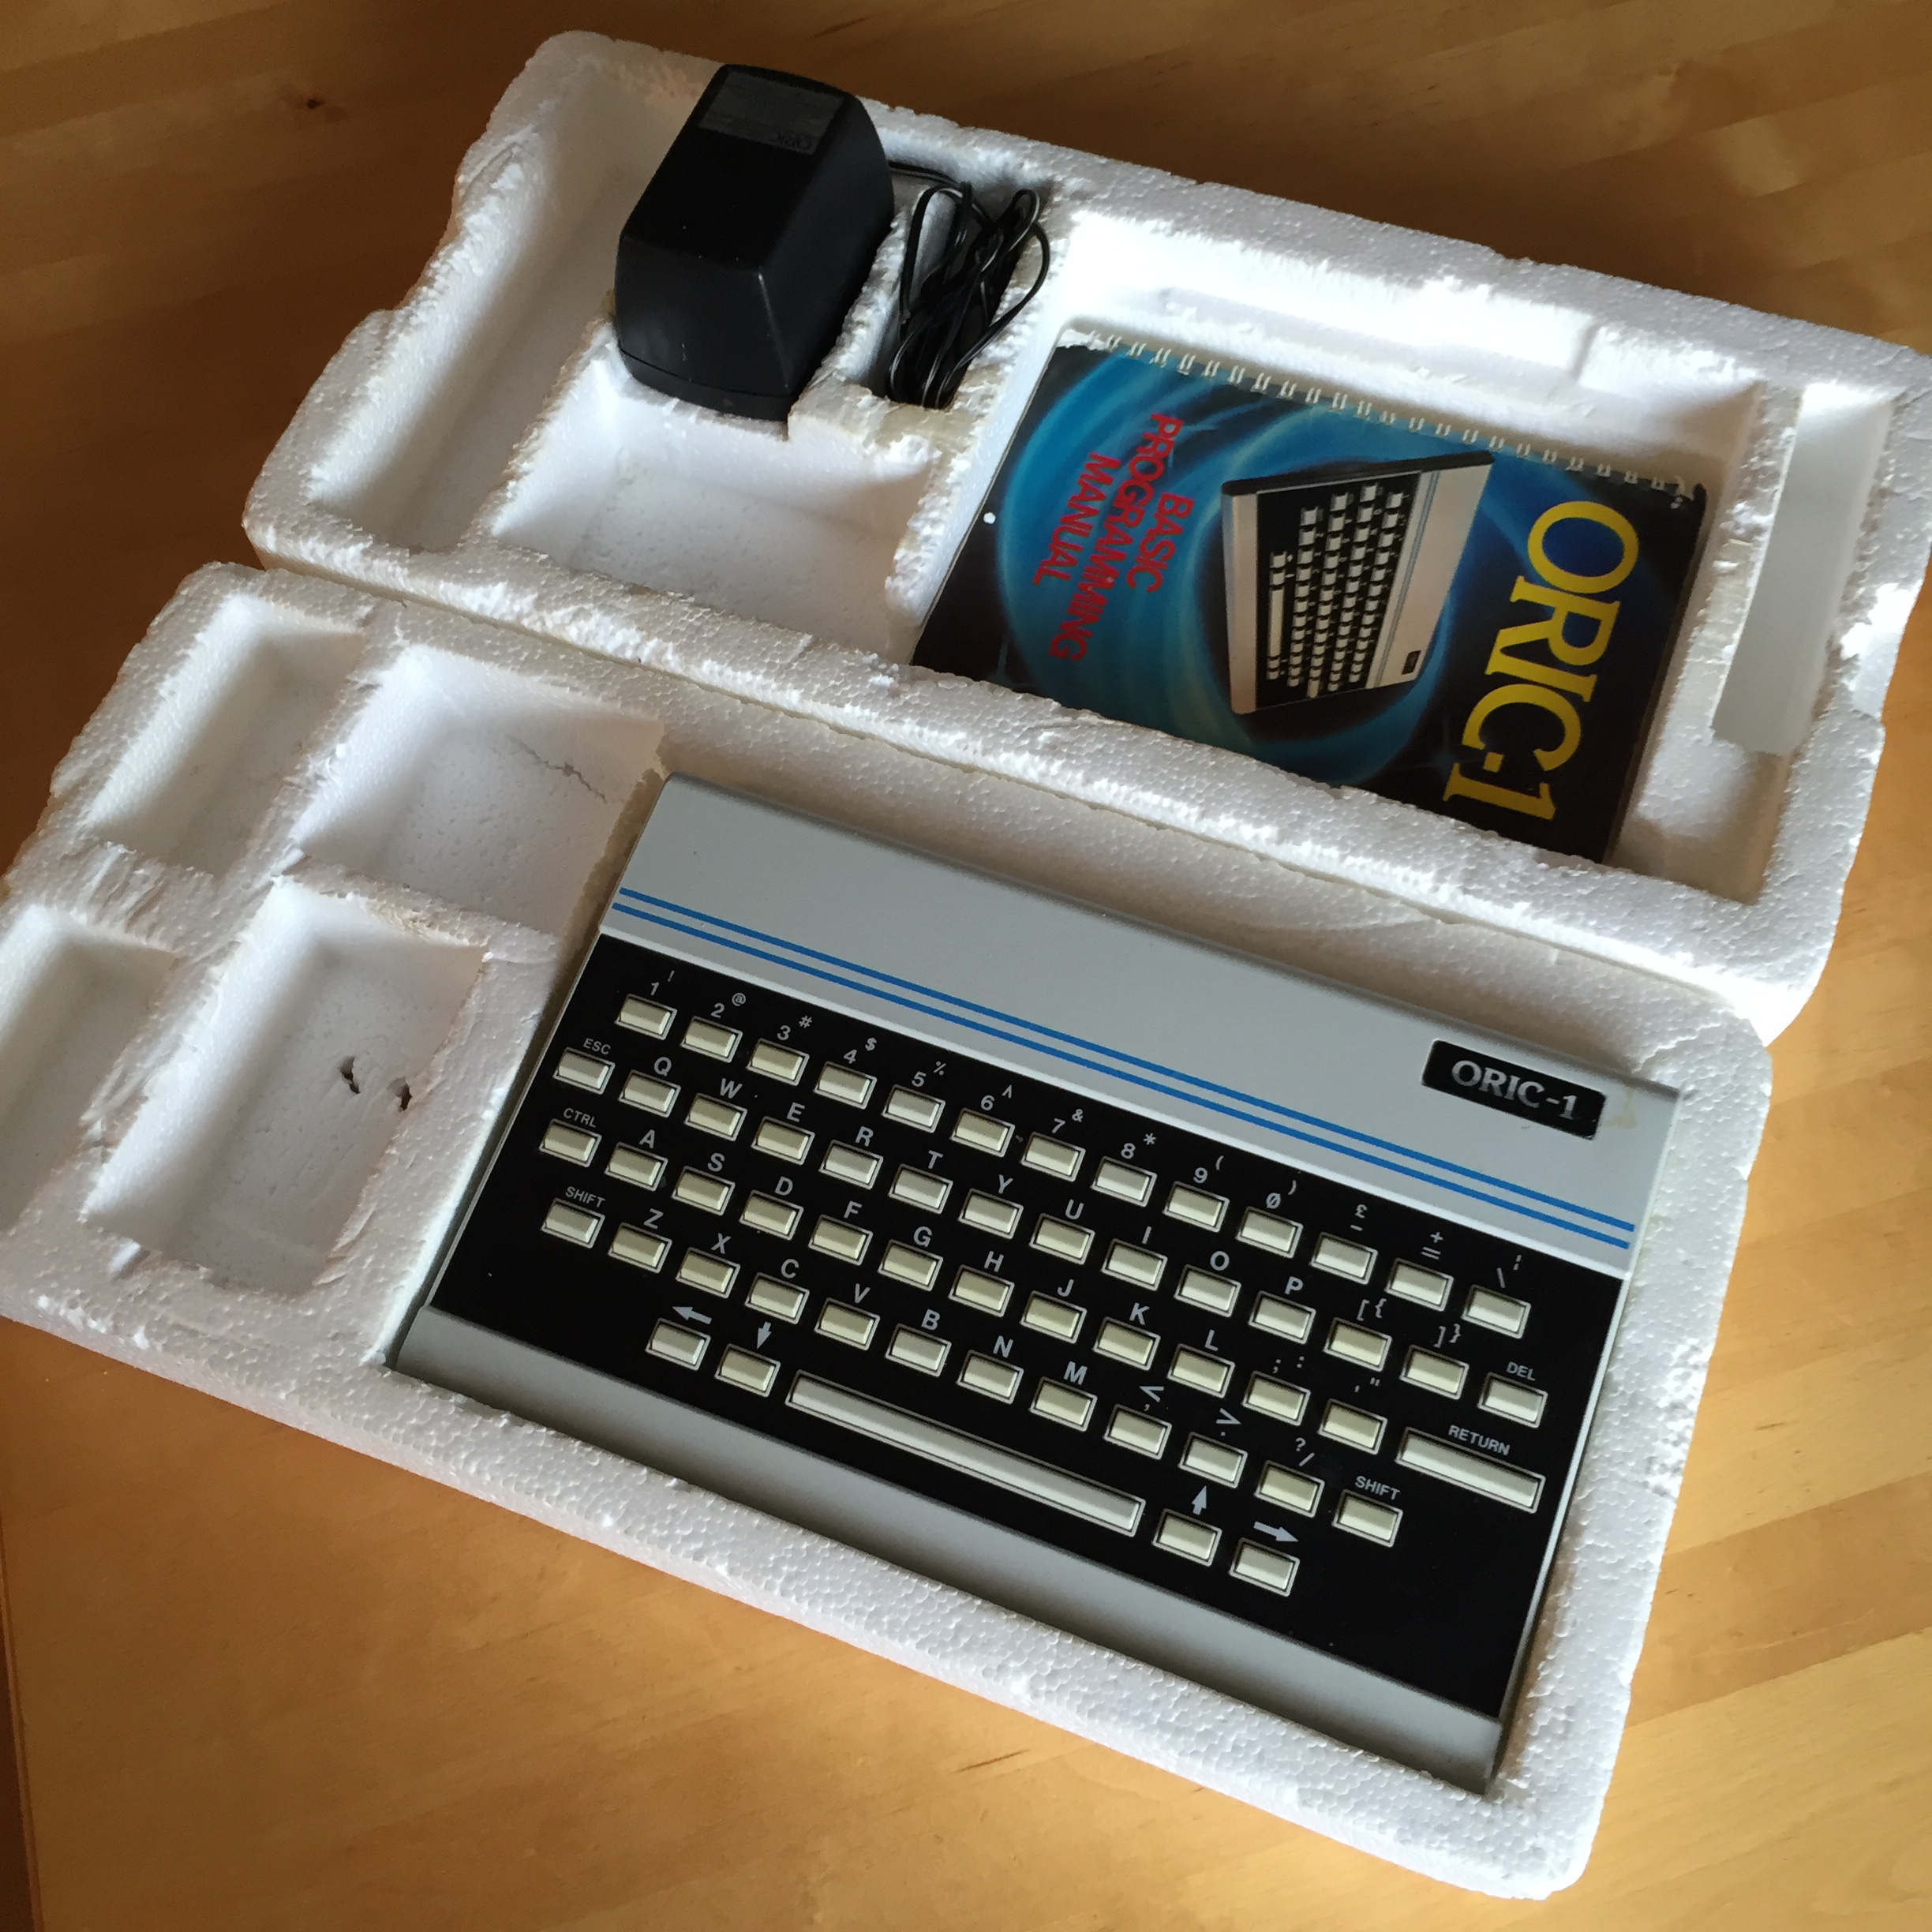 Oric-1 box opened